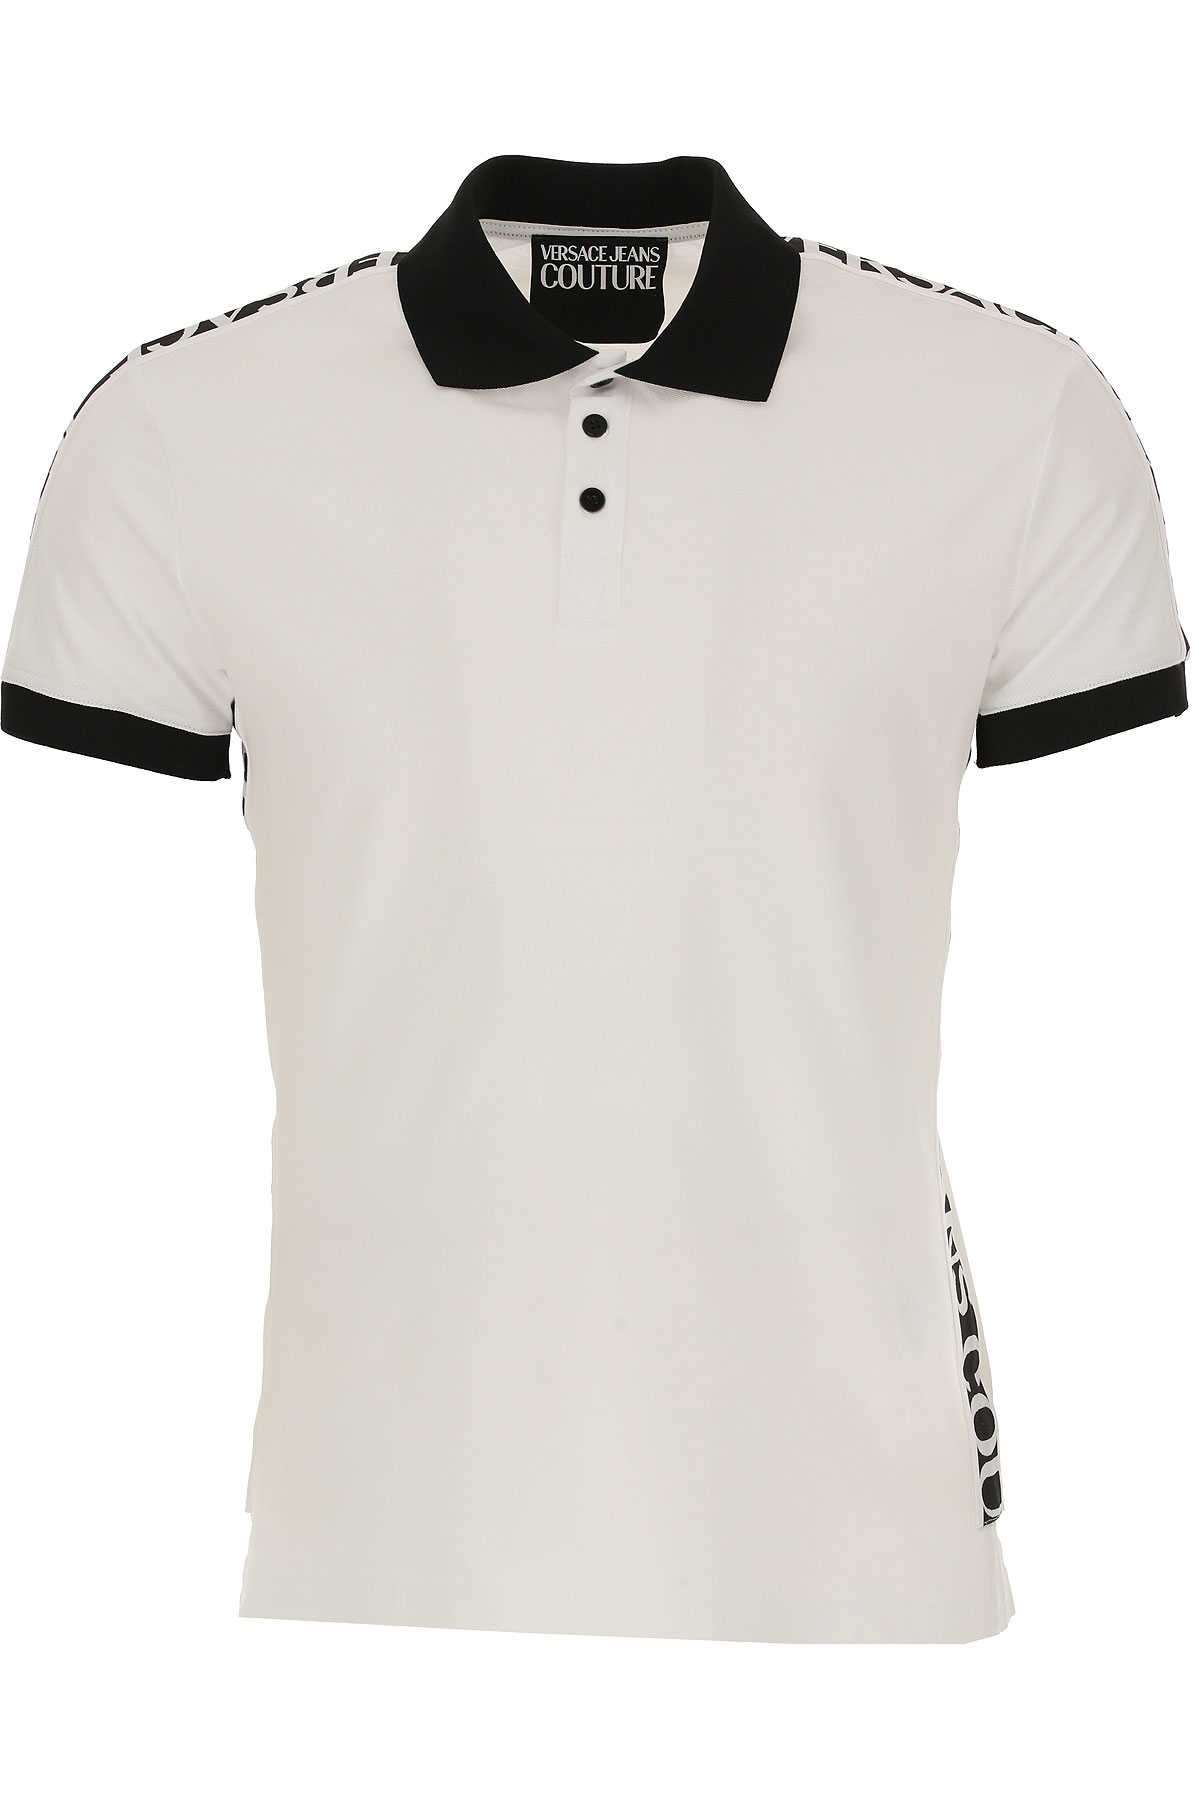 Versace Jeans Couture Polo Shirt for Men White USA - GOOFASH